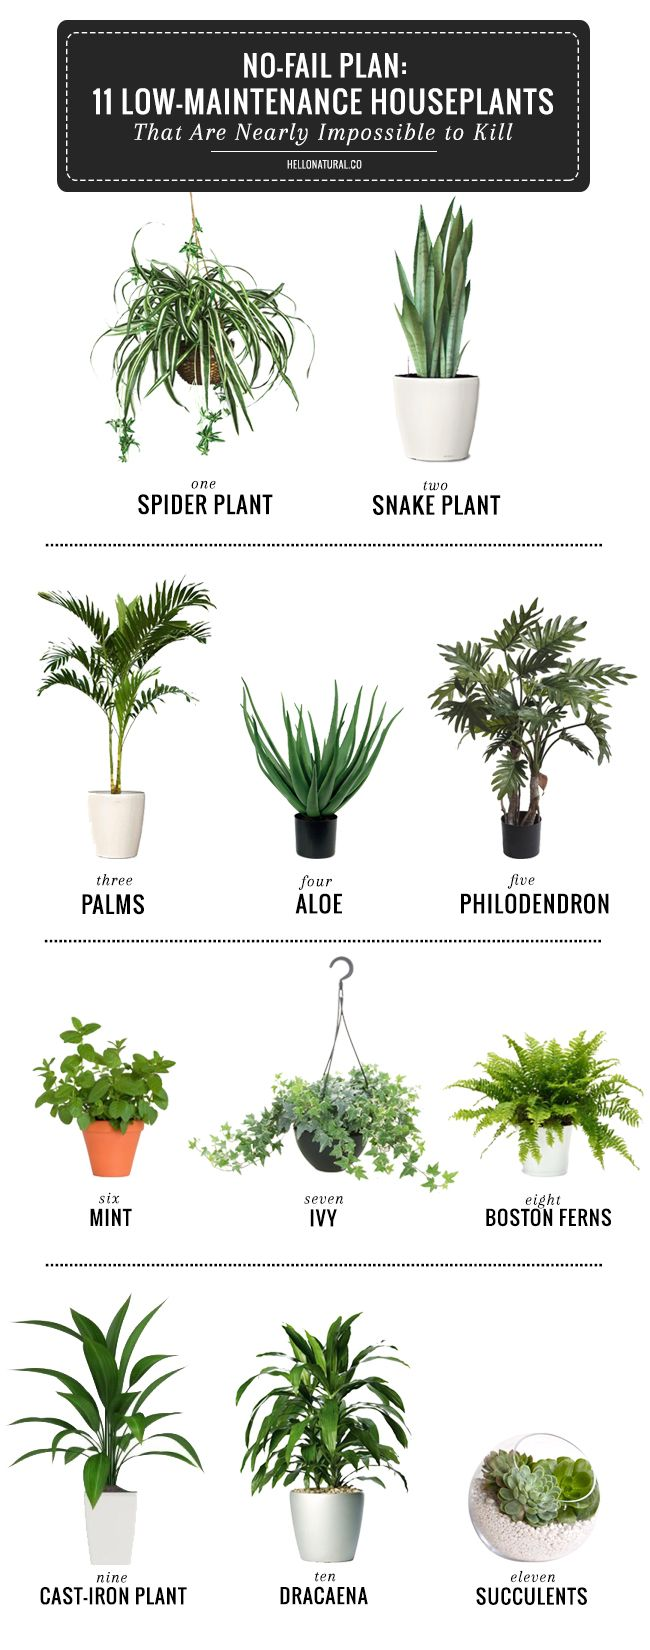 No-Fail Plan: 11 Low-Maintenance Houseplants That Are Nearly Impossible to Kill | http://hellonatural.co/11-easy-to-grow-houseplants/